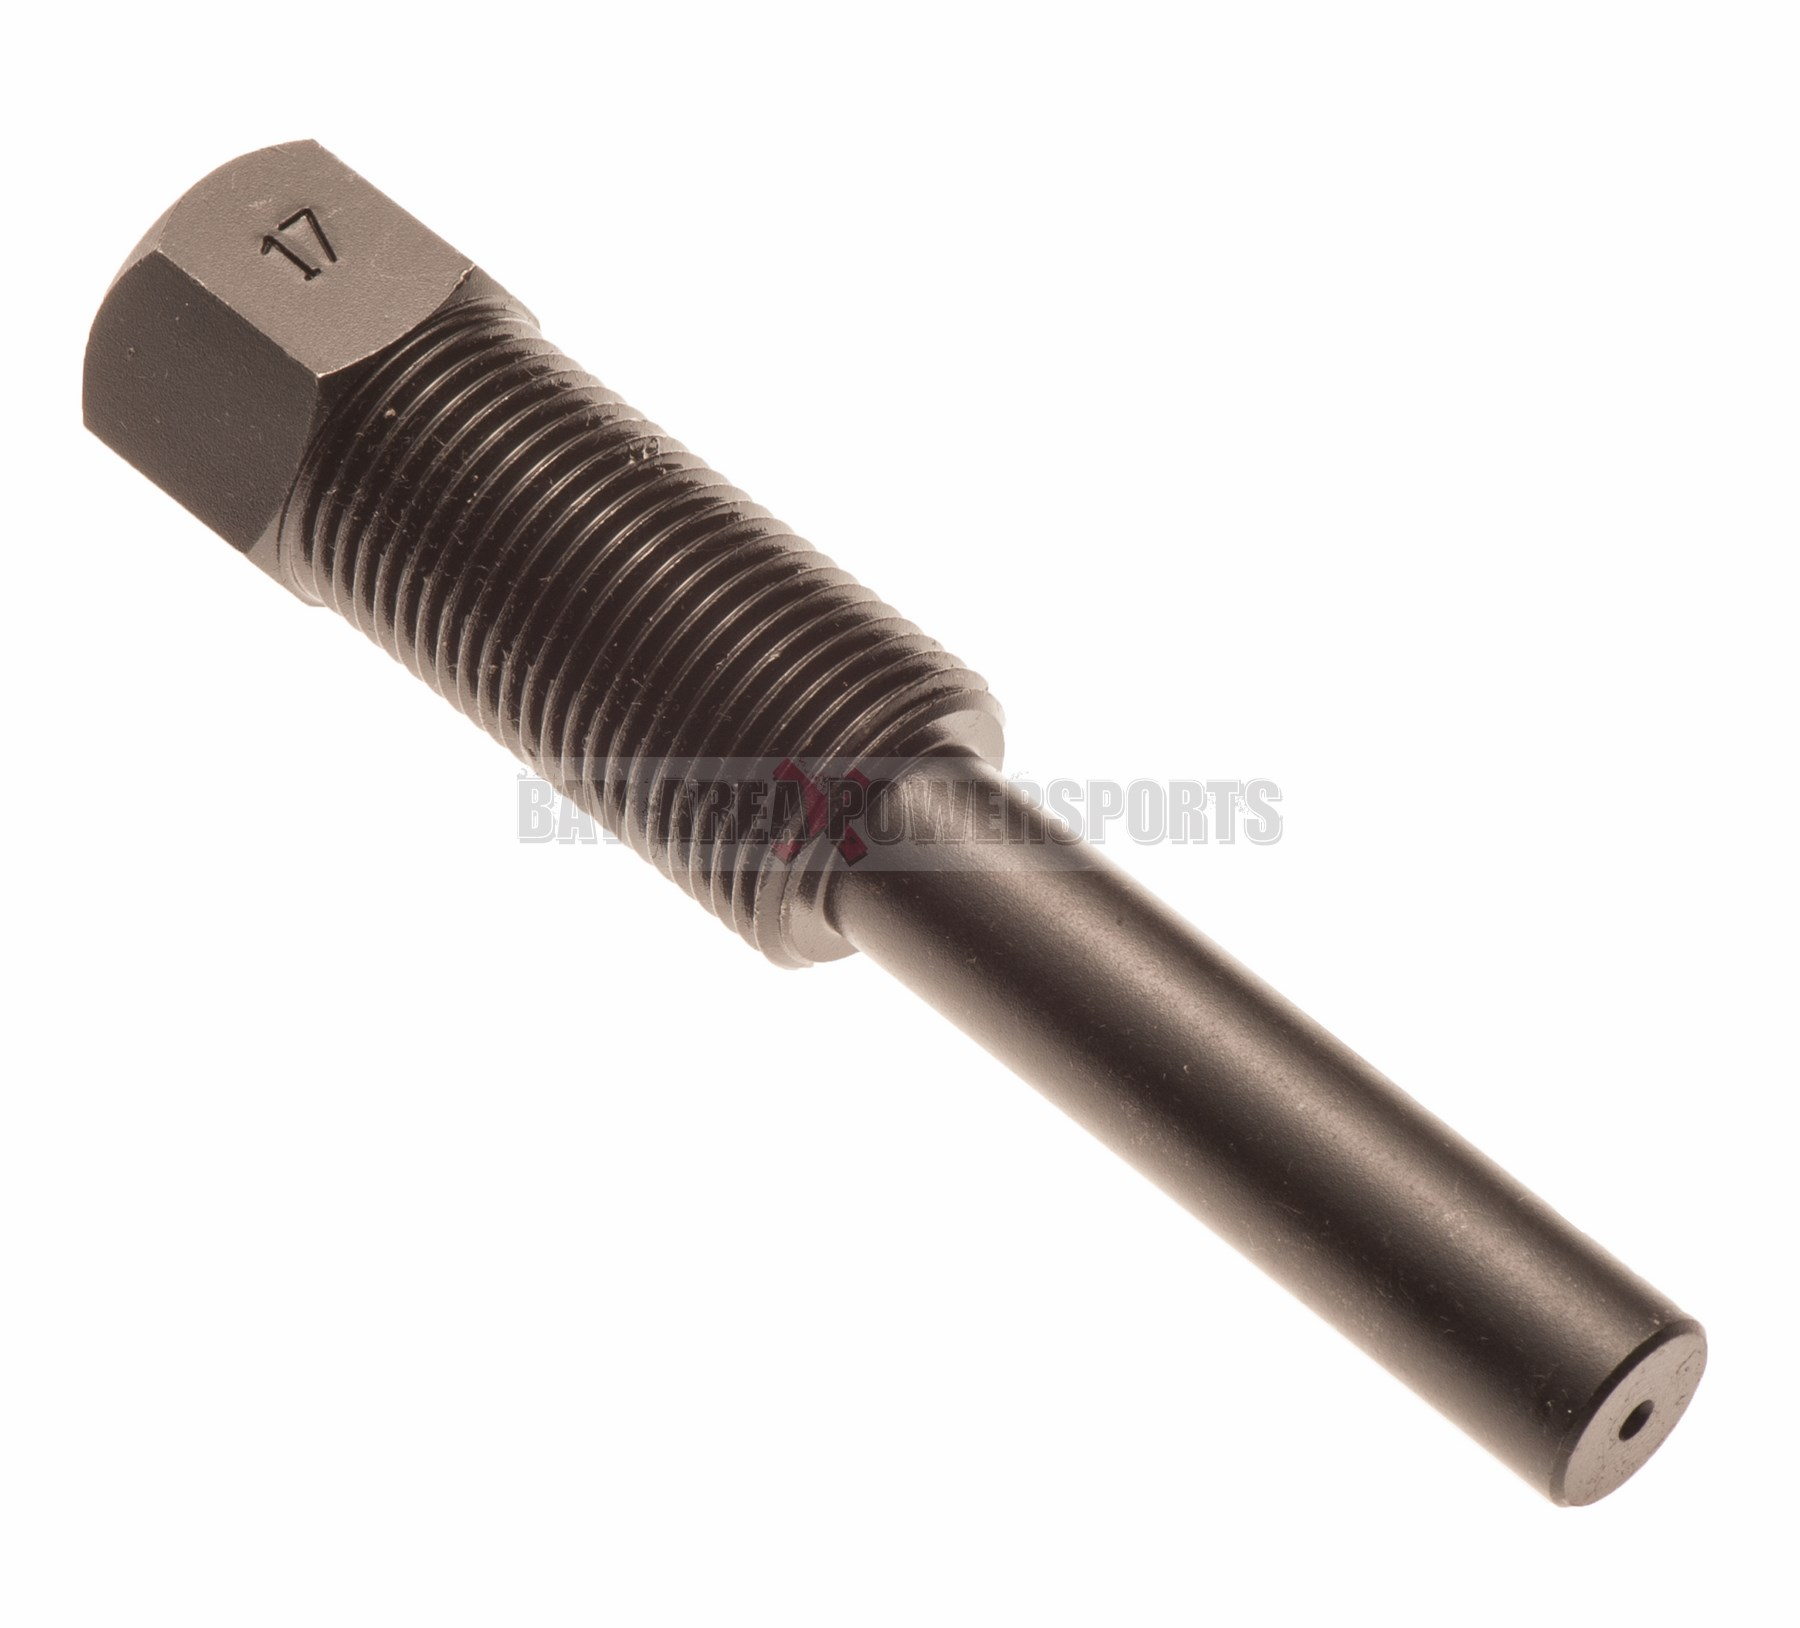 Secondary Drive Clutch Pulley Puller Remover Installer Tool Fit Polaris 85-09